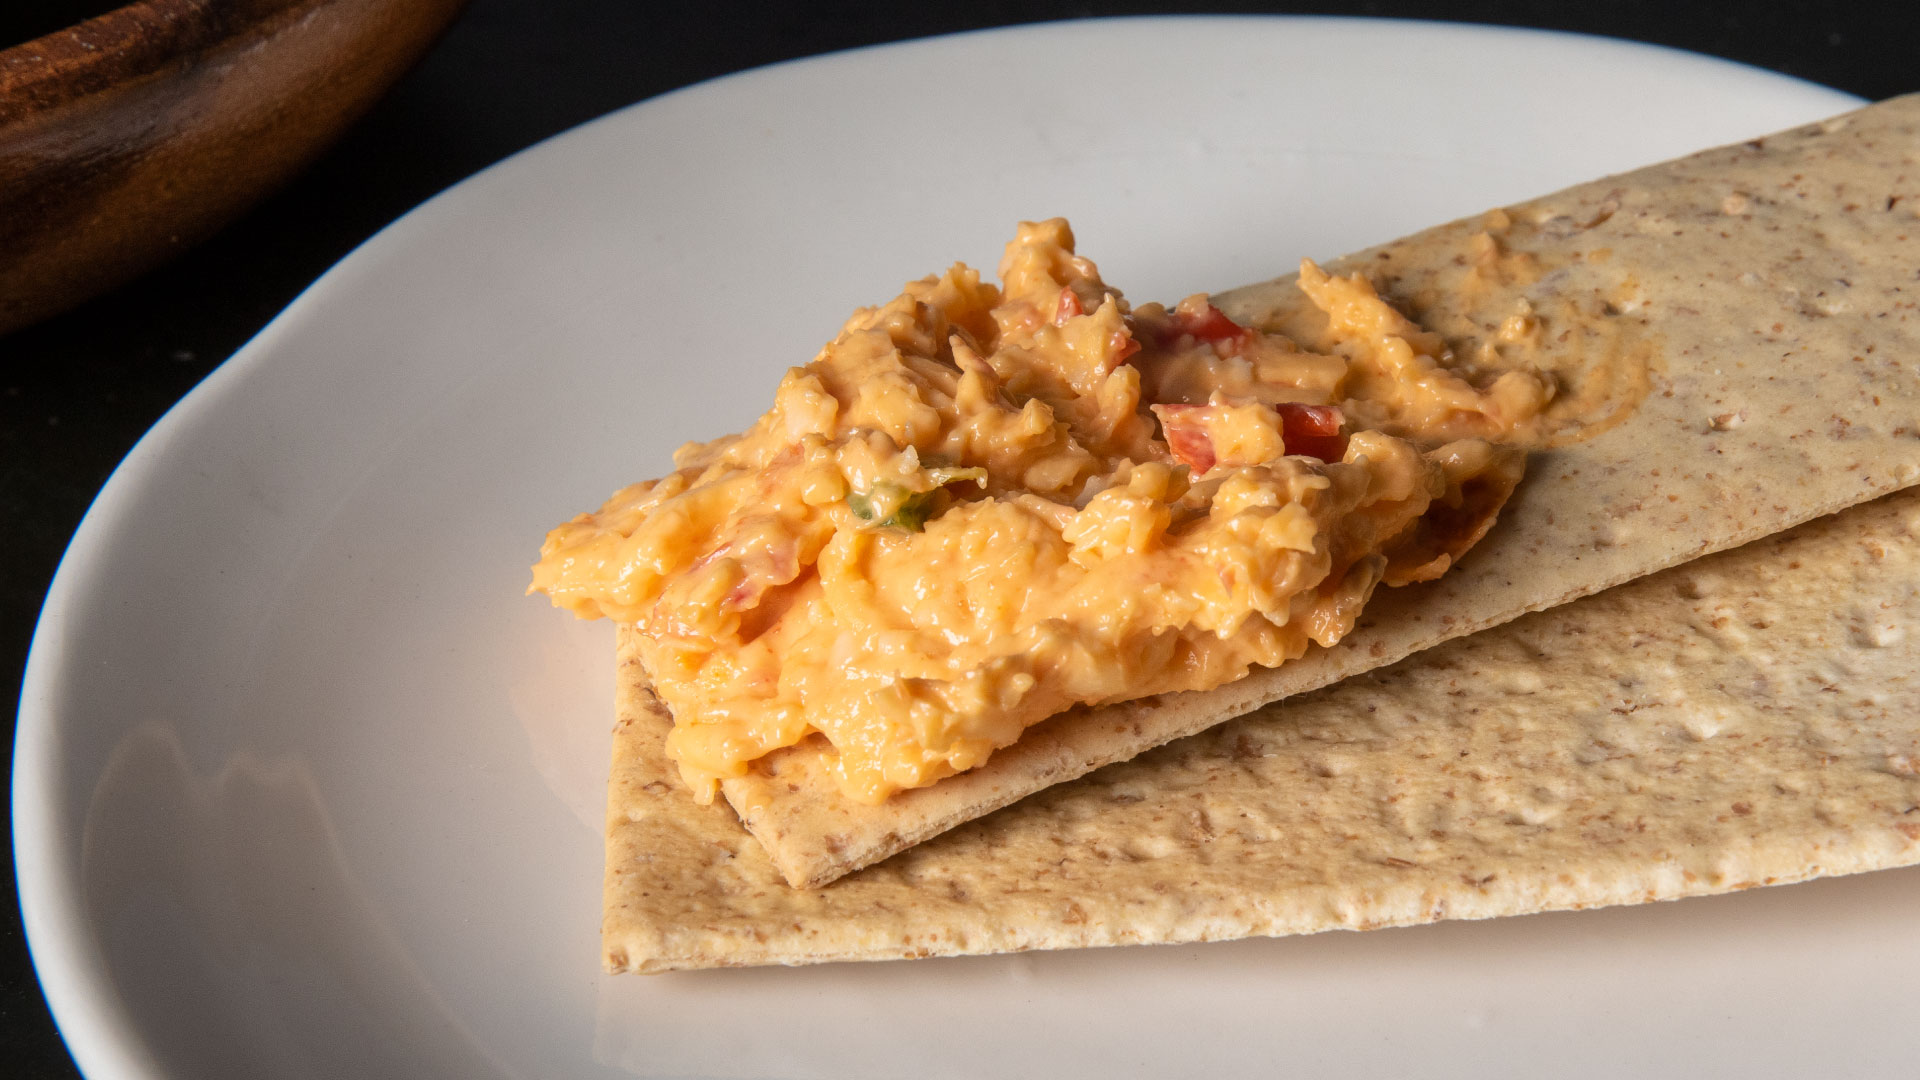 Murray's Signature Pimento Cheese Dip